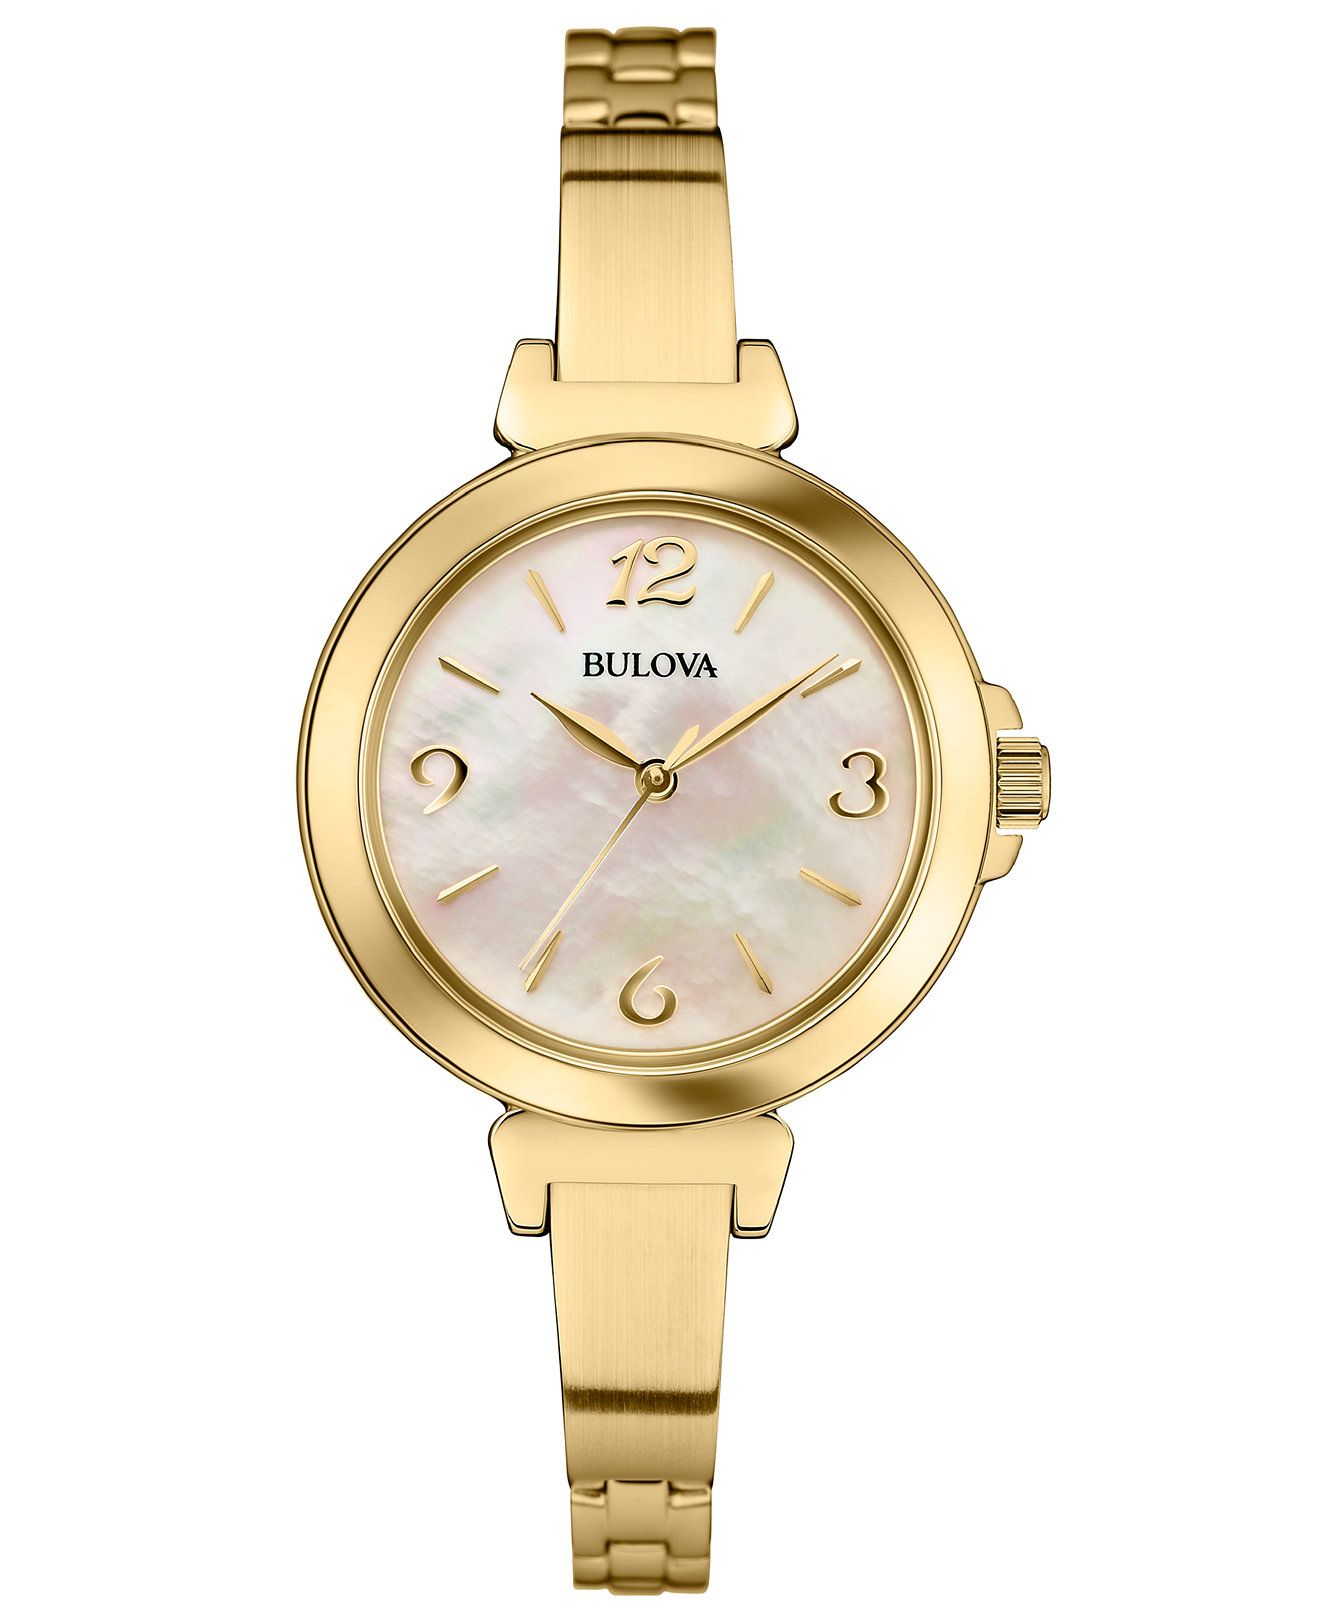 Bulova Women s Gold-Tone Stainless Steel Bangle Bracelet Watch 30mm 97L136  - Women s Watches - Jewelry   Watches - Macy s 8b76e0ae26